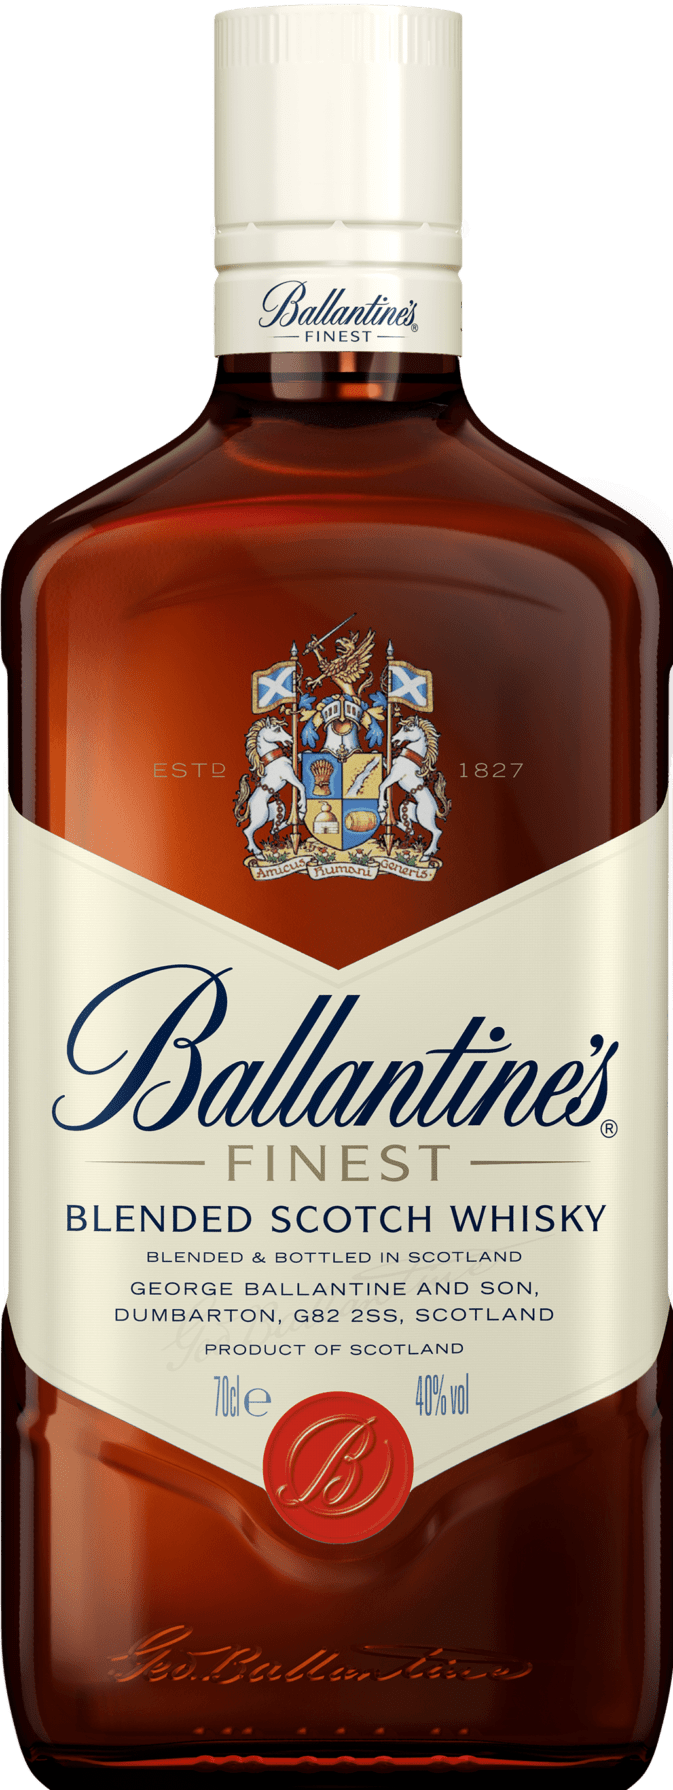 ballantines-finest-bottle